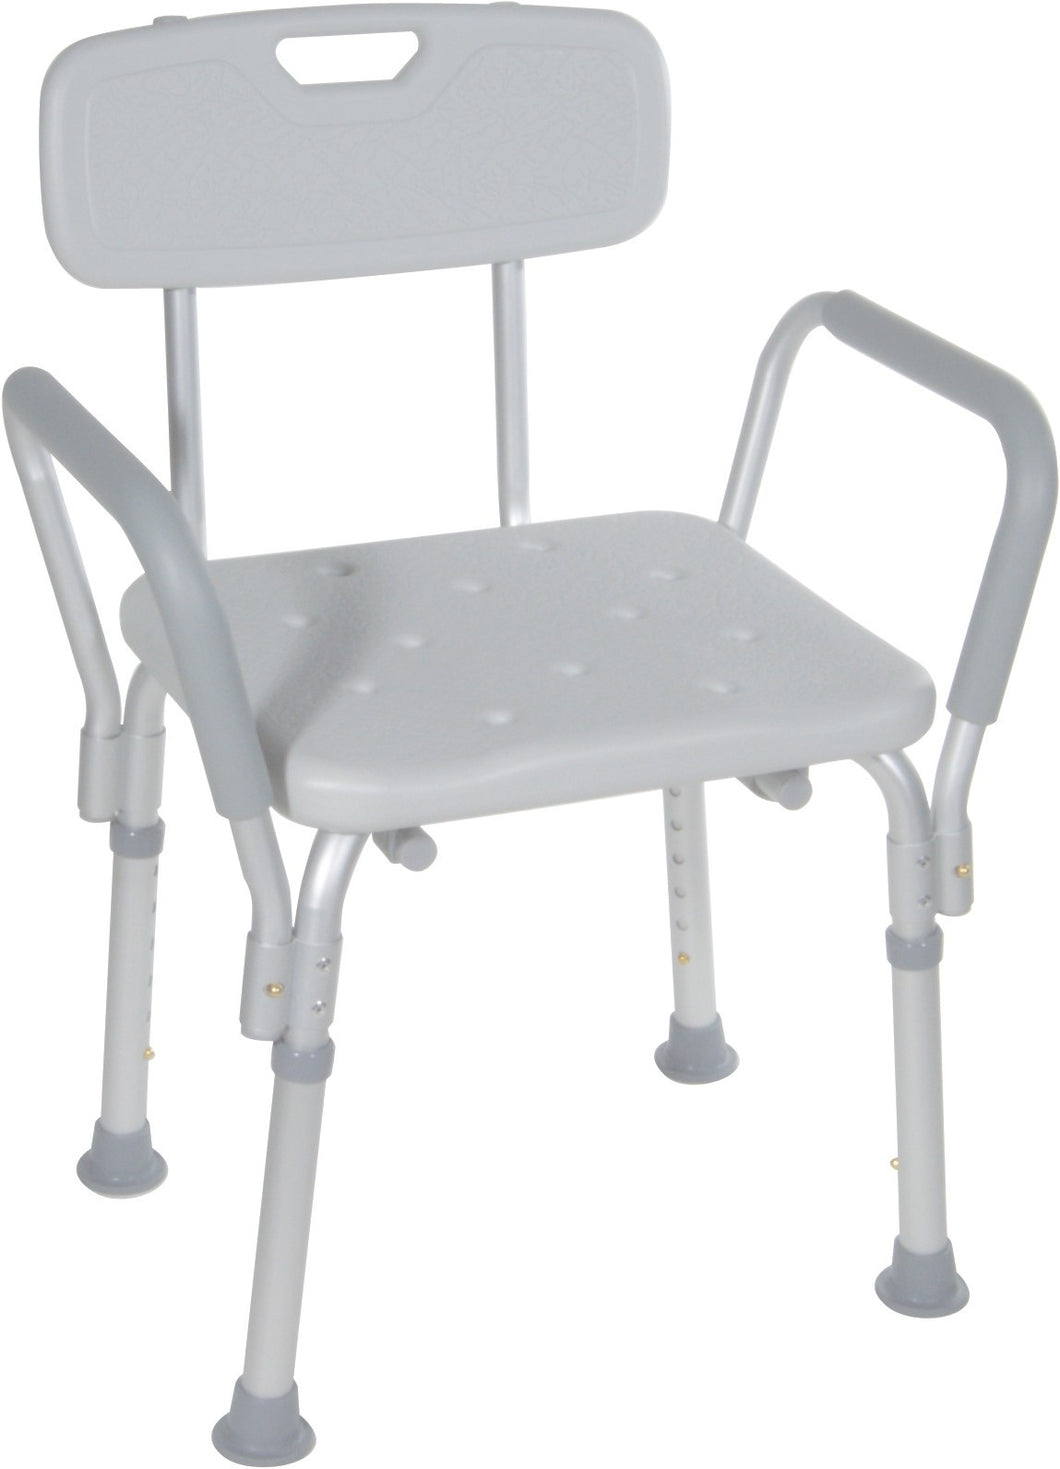 Aluminum Shower Chair with Back and Handles